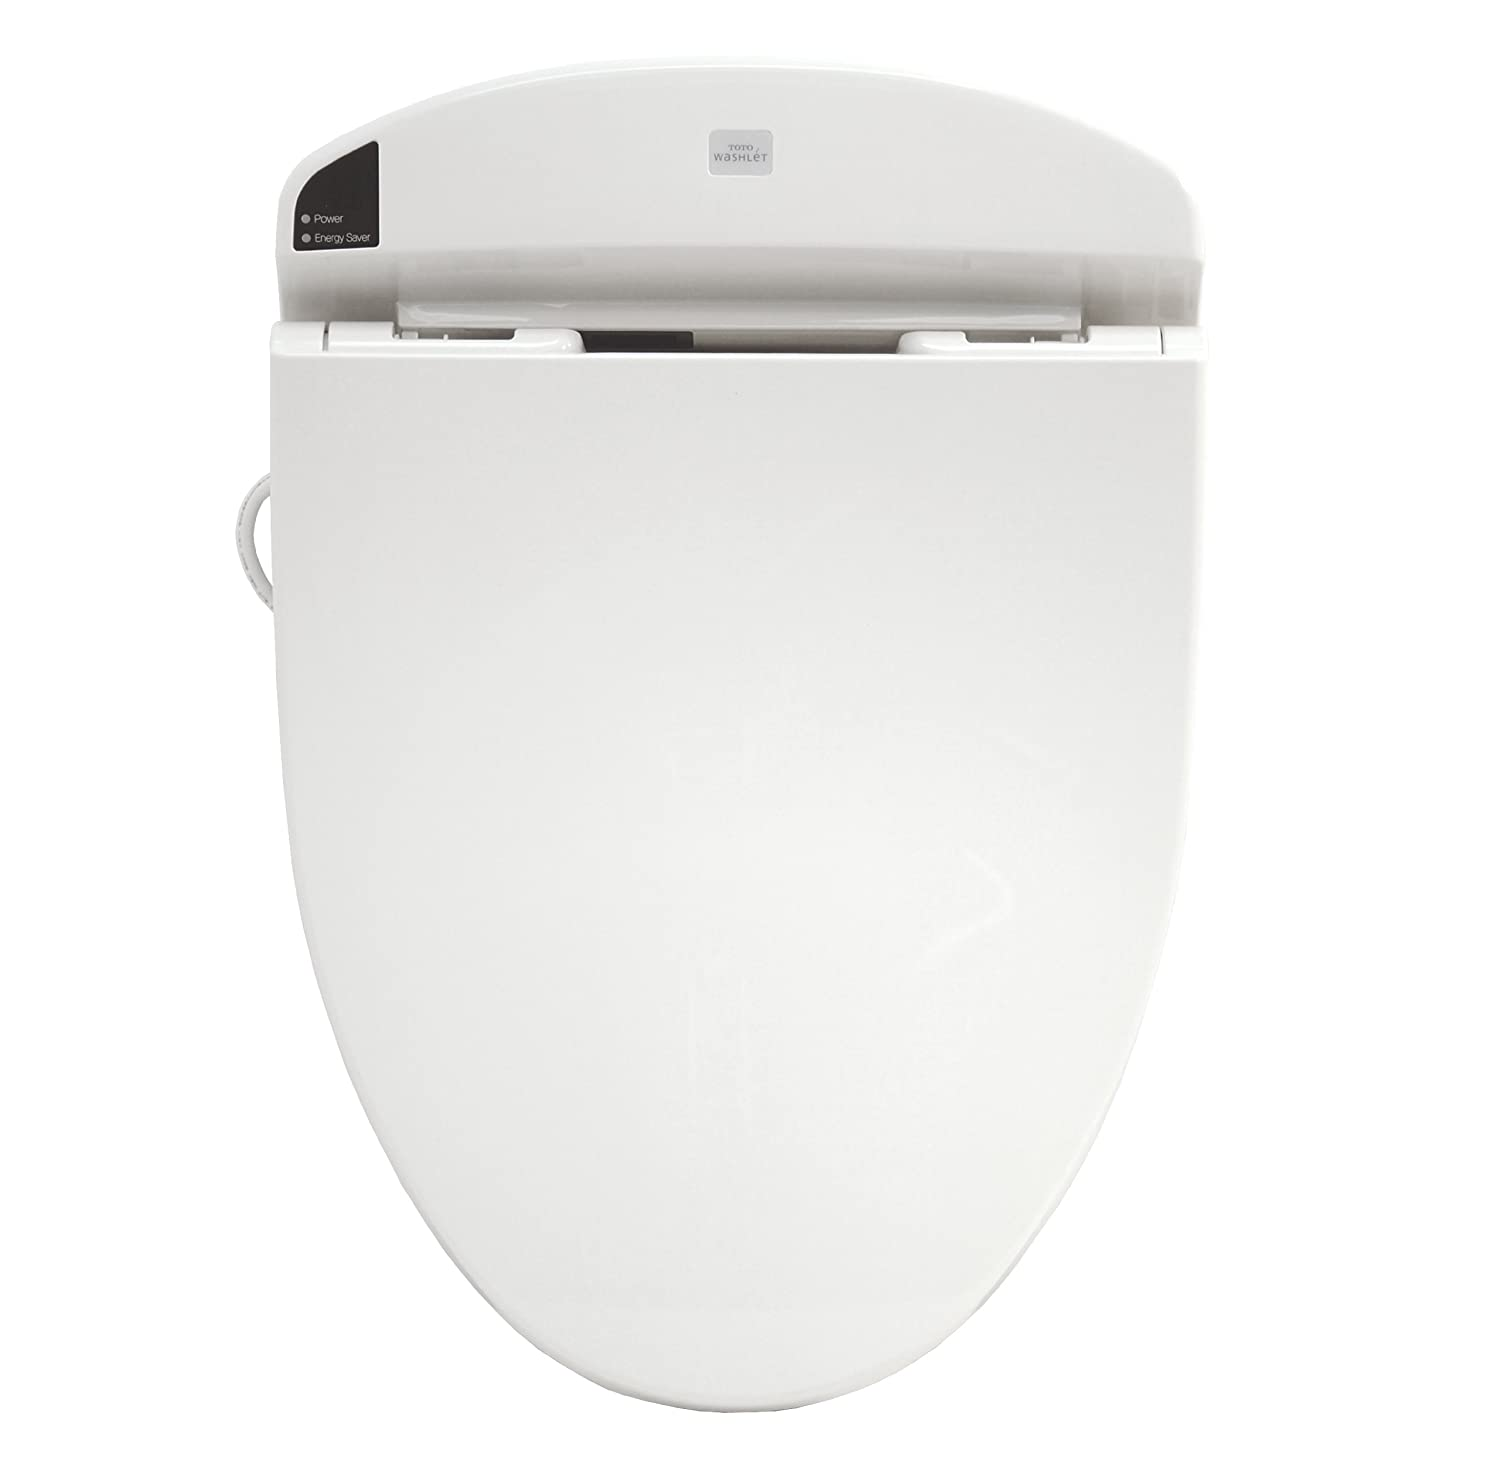 TOTO SW844 12 Washlet E200 Elongated Front Toilet Seat  Sedona Beige      Amazon com. TOTO SW844 12 Washlet E200 Elongated Front Toilet Seat  Sedona